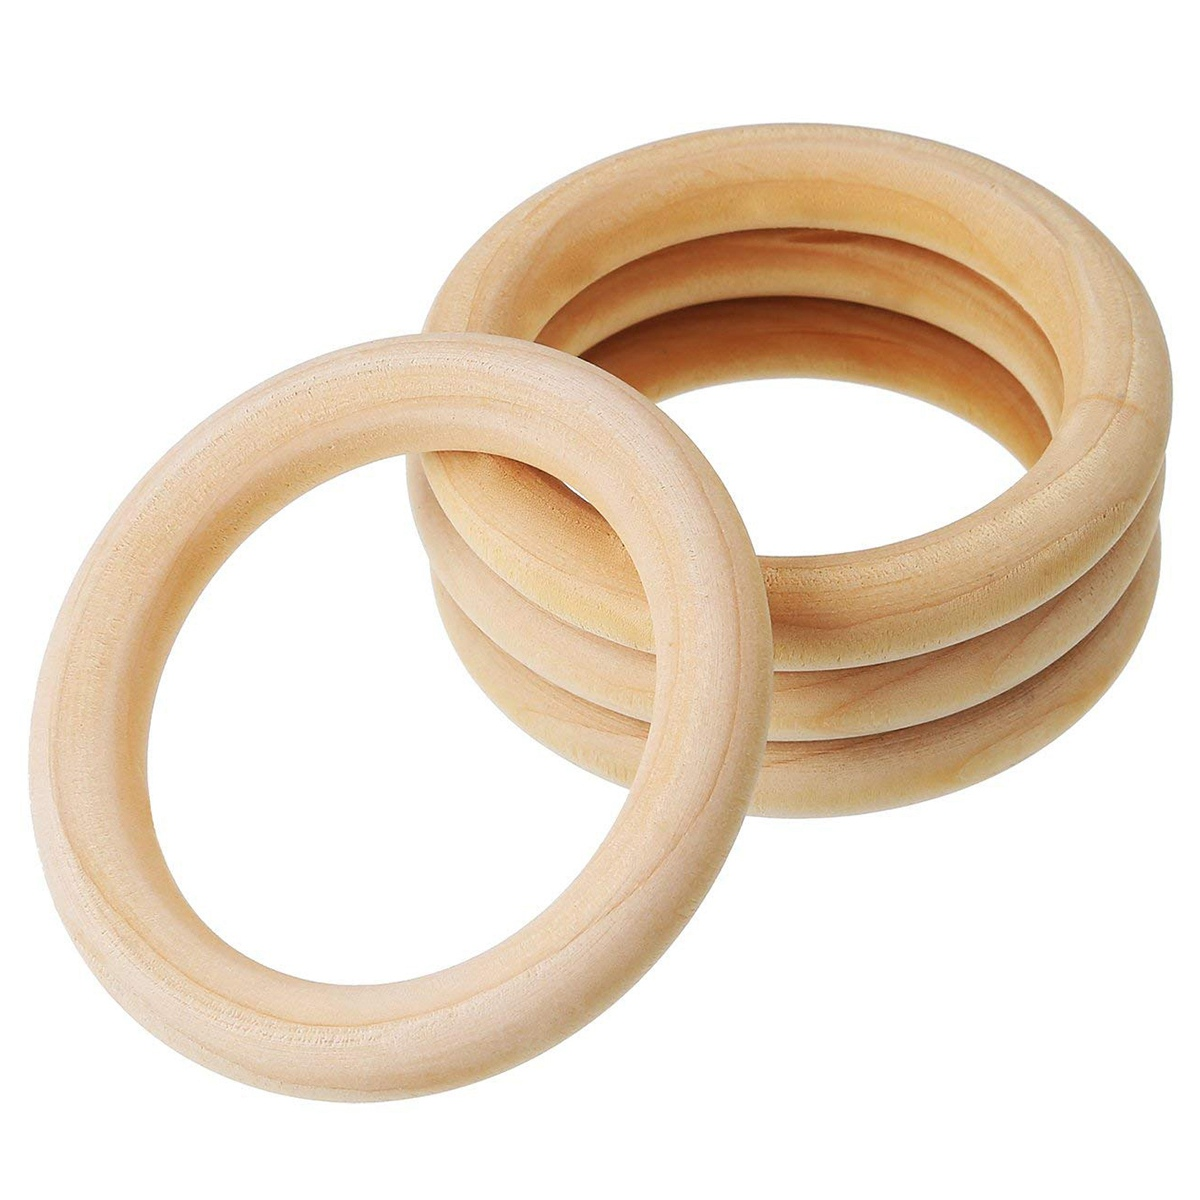 uxcell Natural Wood Rings Unfinished Wooden Circles for DIY Craft Making Ring Pendant and Connectors 45mm 20 Pcs